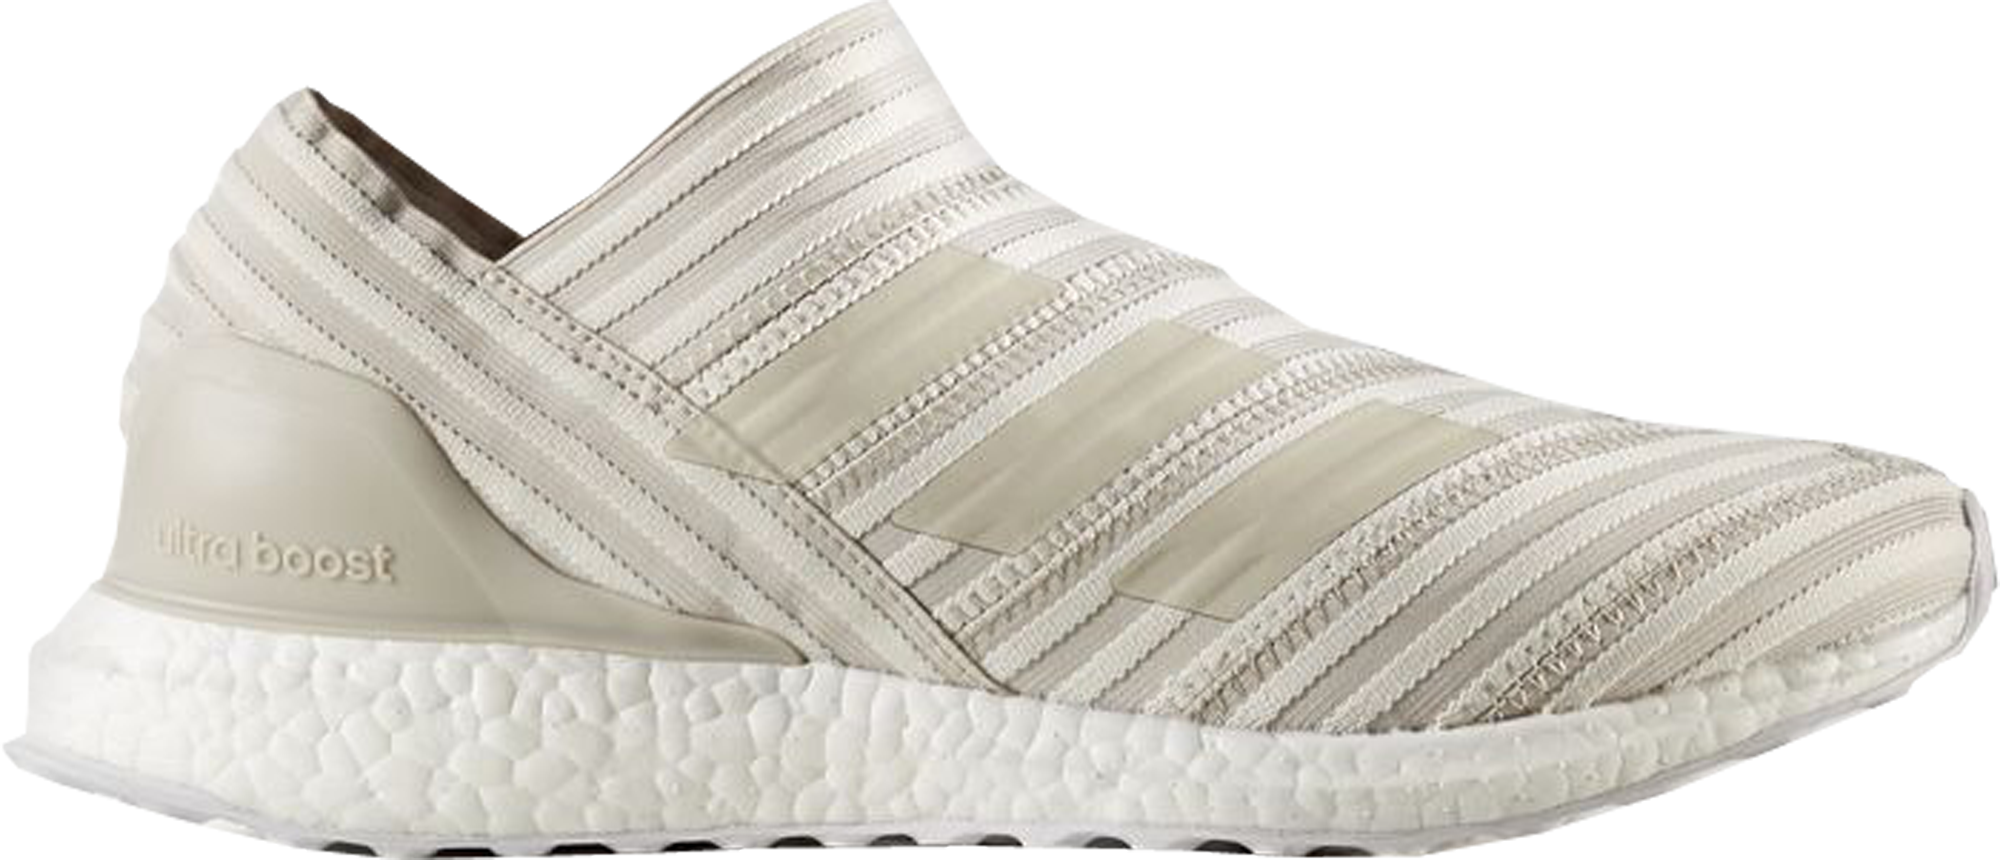 adidas Nemeziz Tango 17 Ultra Boost Clear Brown